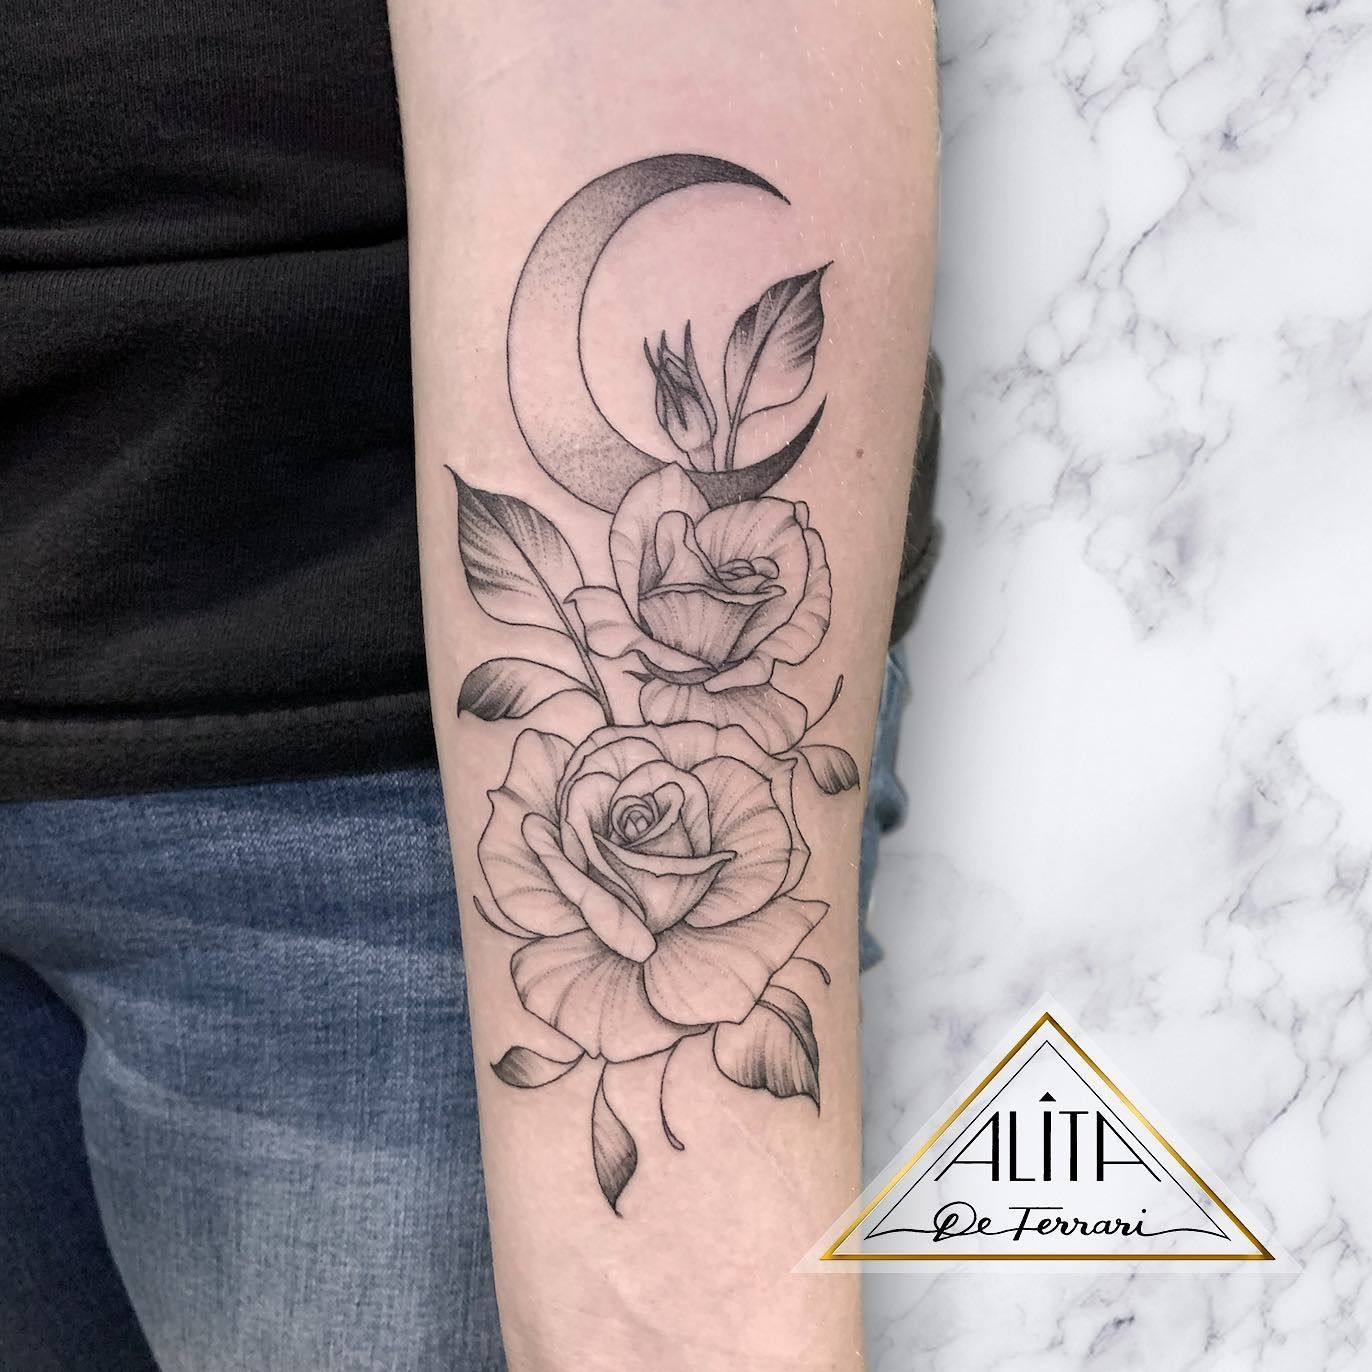 Another lovely piece done in denver thank you kayla